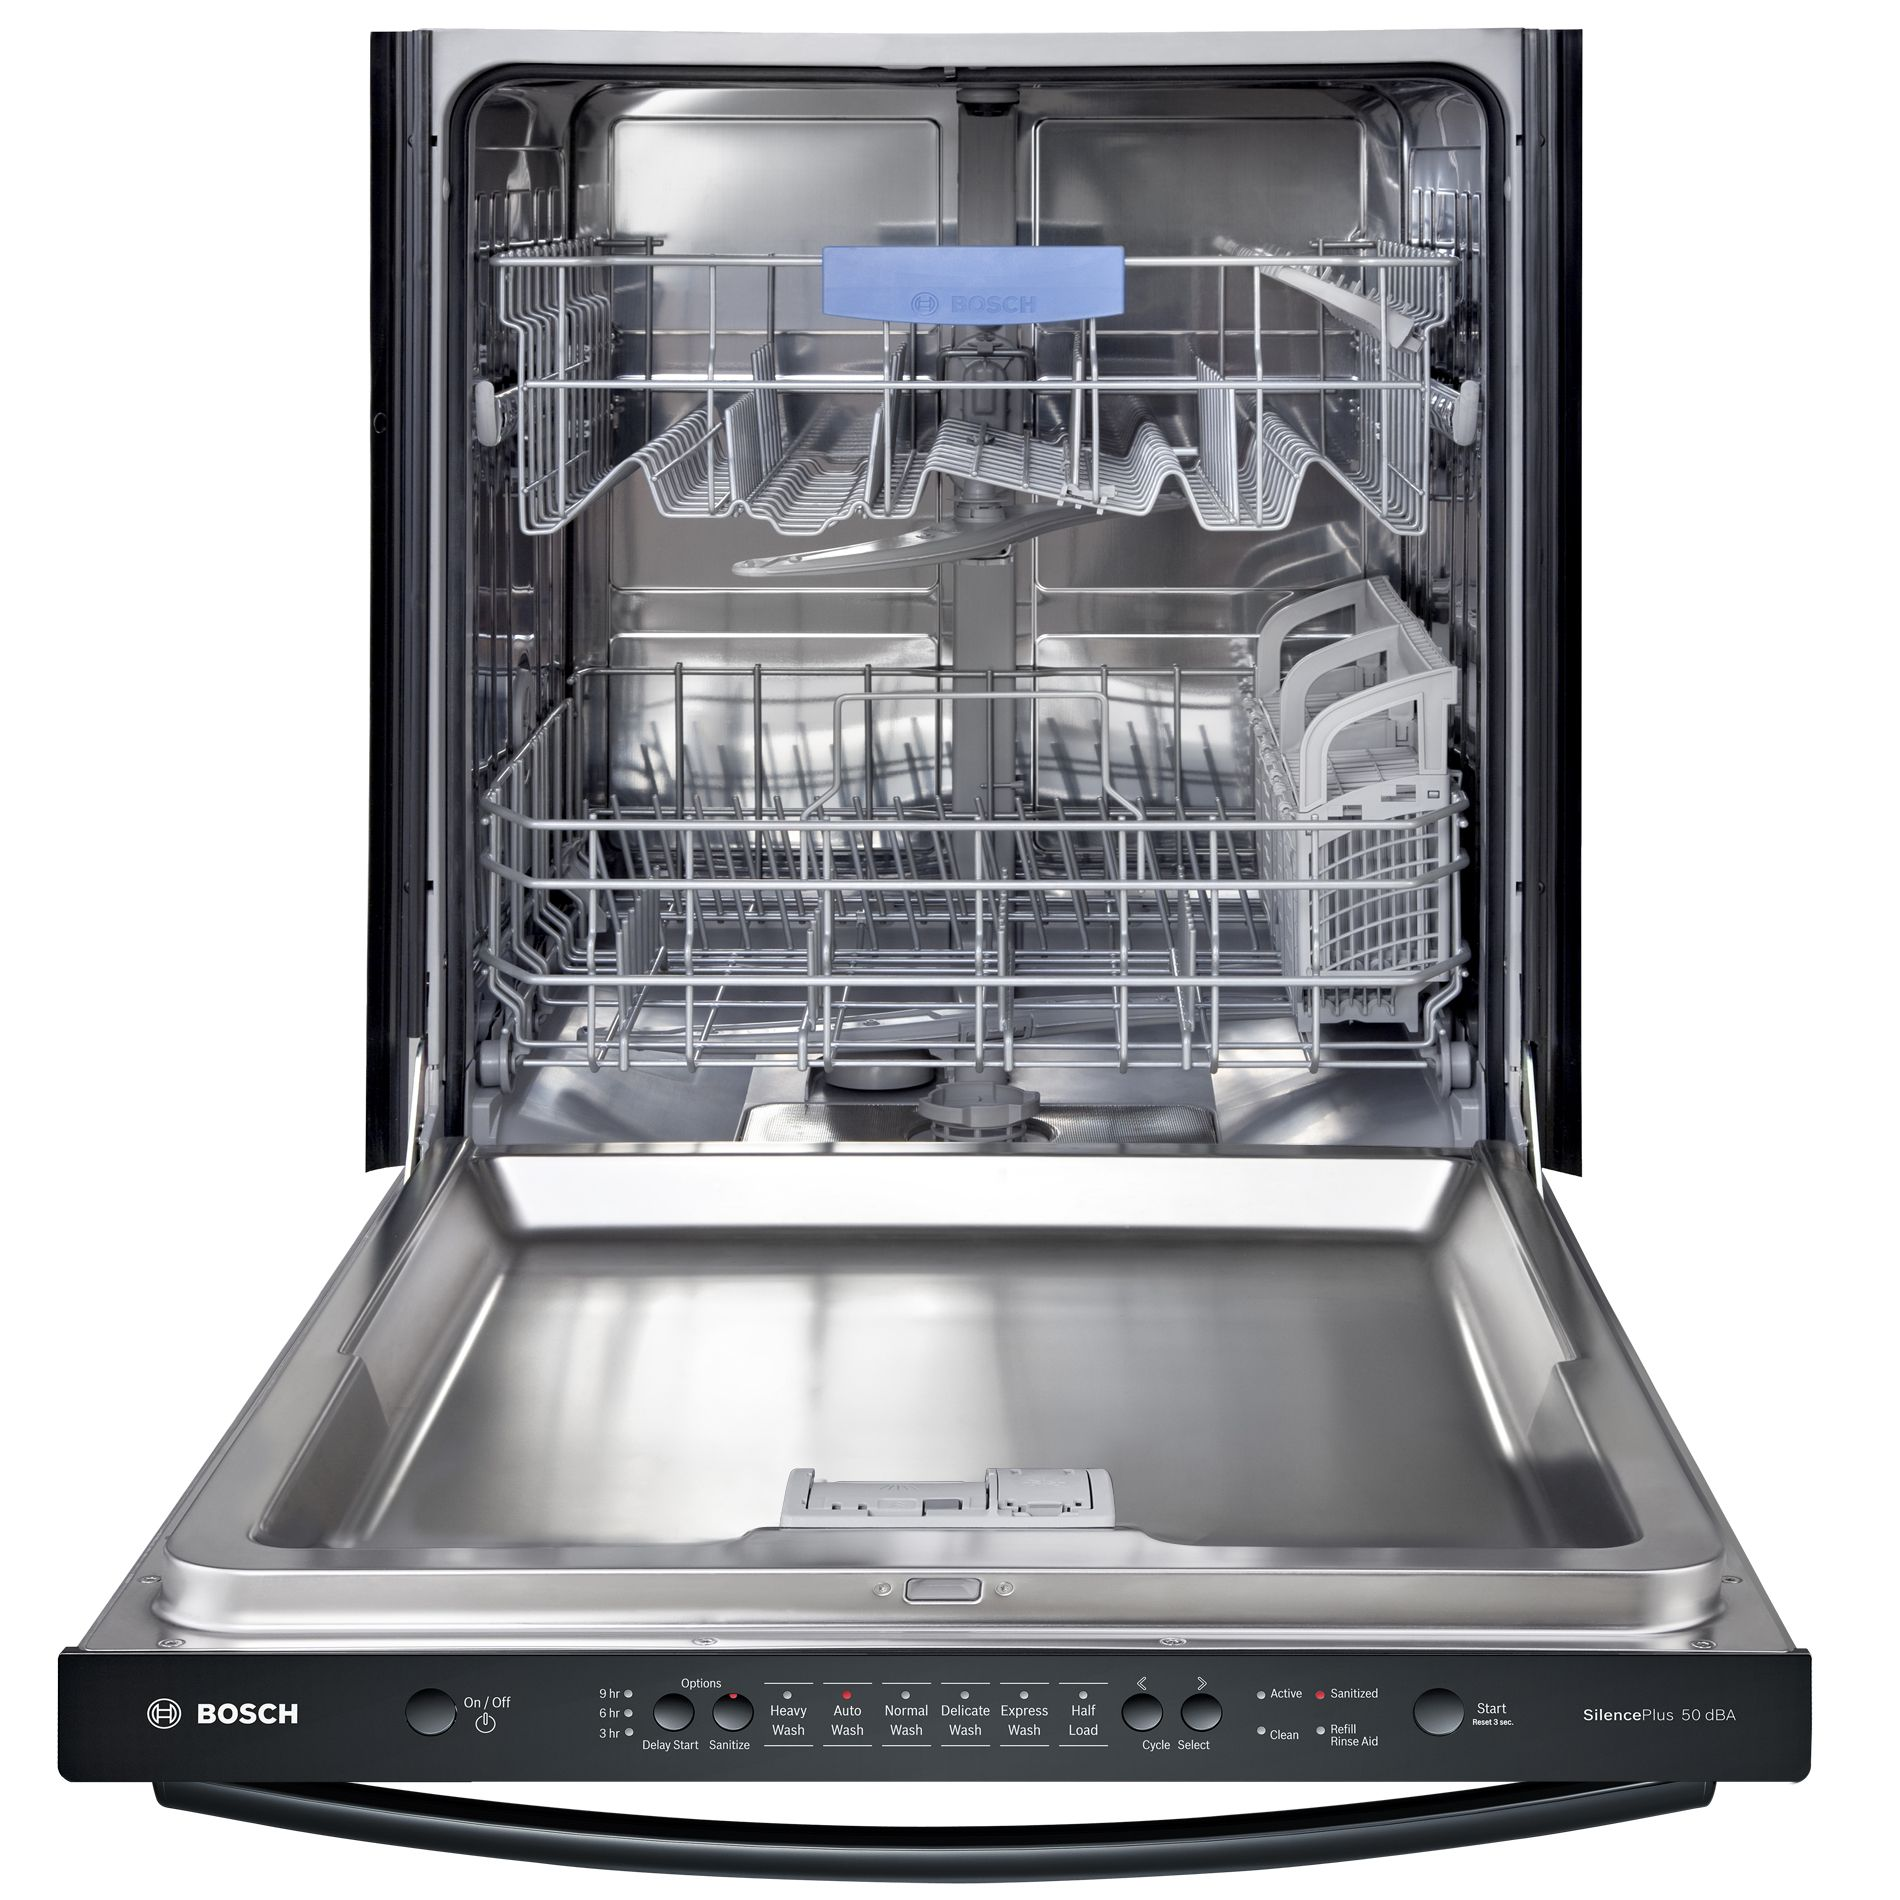 "Bosch SHX3AR76UC 24"" Built-In Dishwasher - Black"